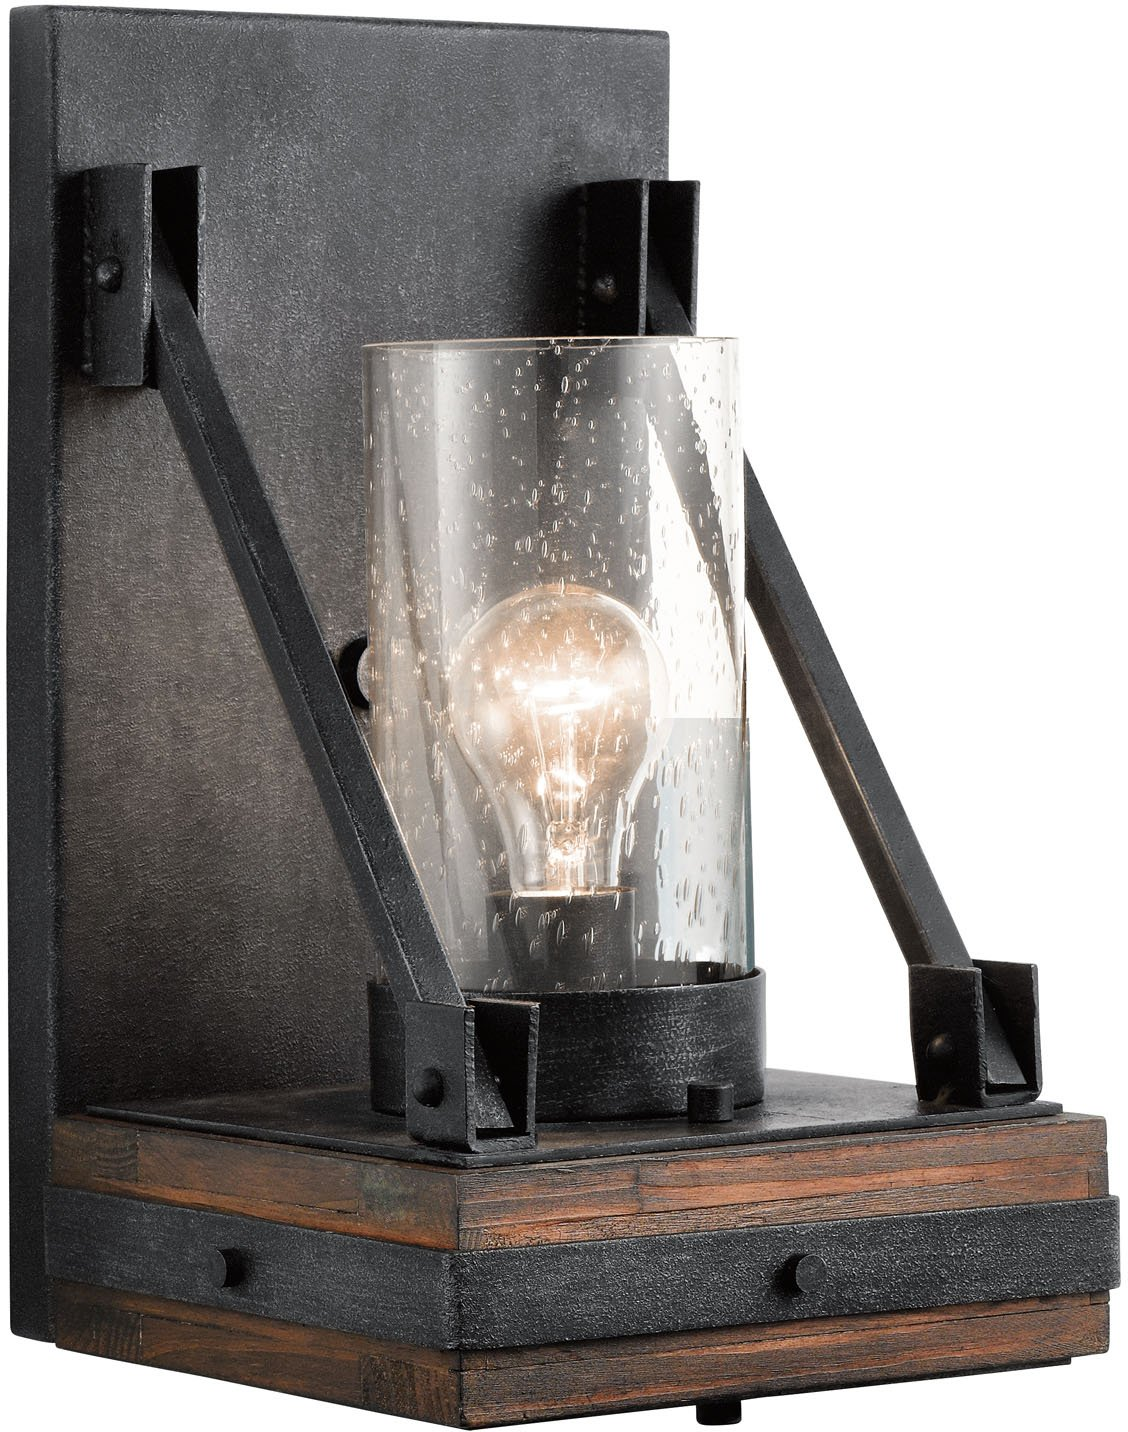 Kichler Wall Sconce